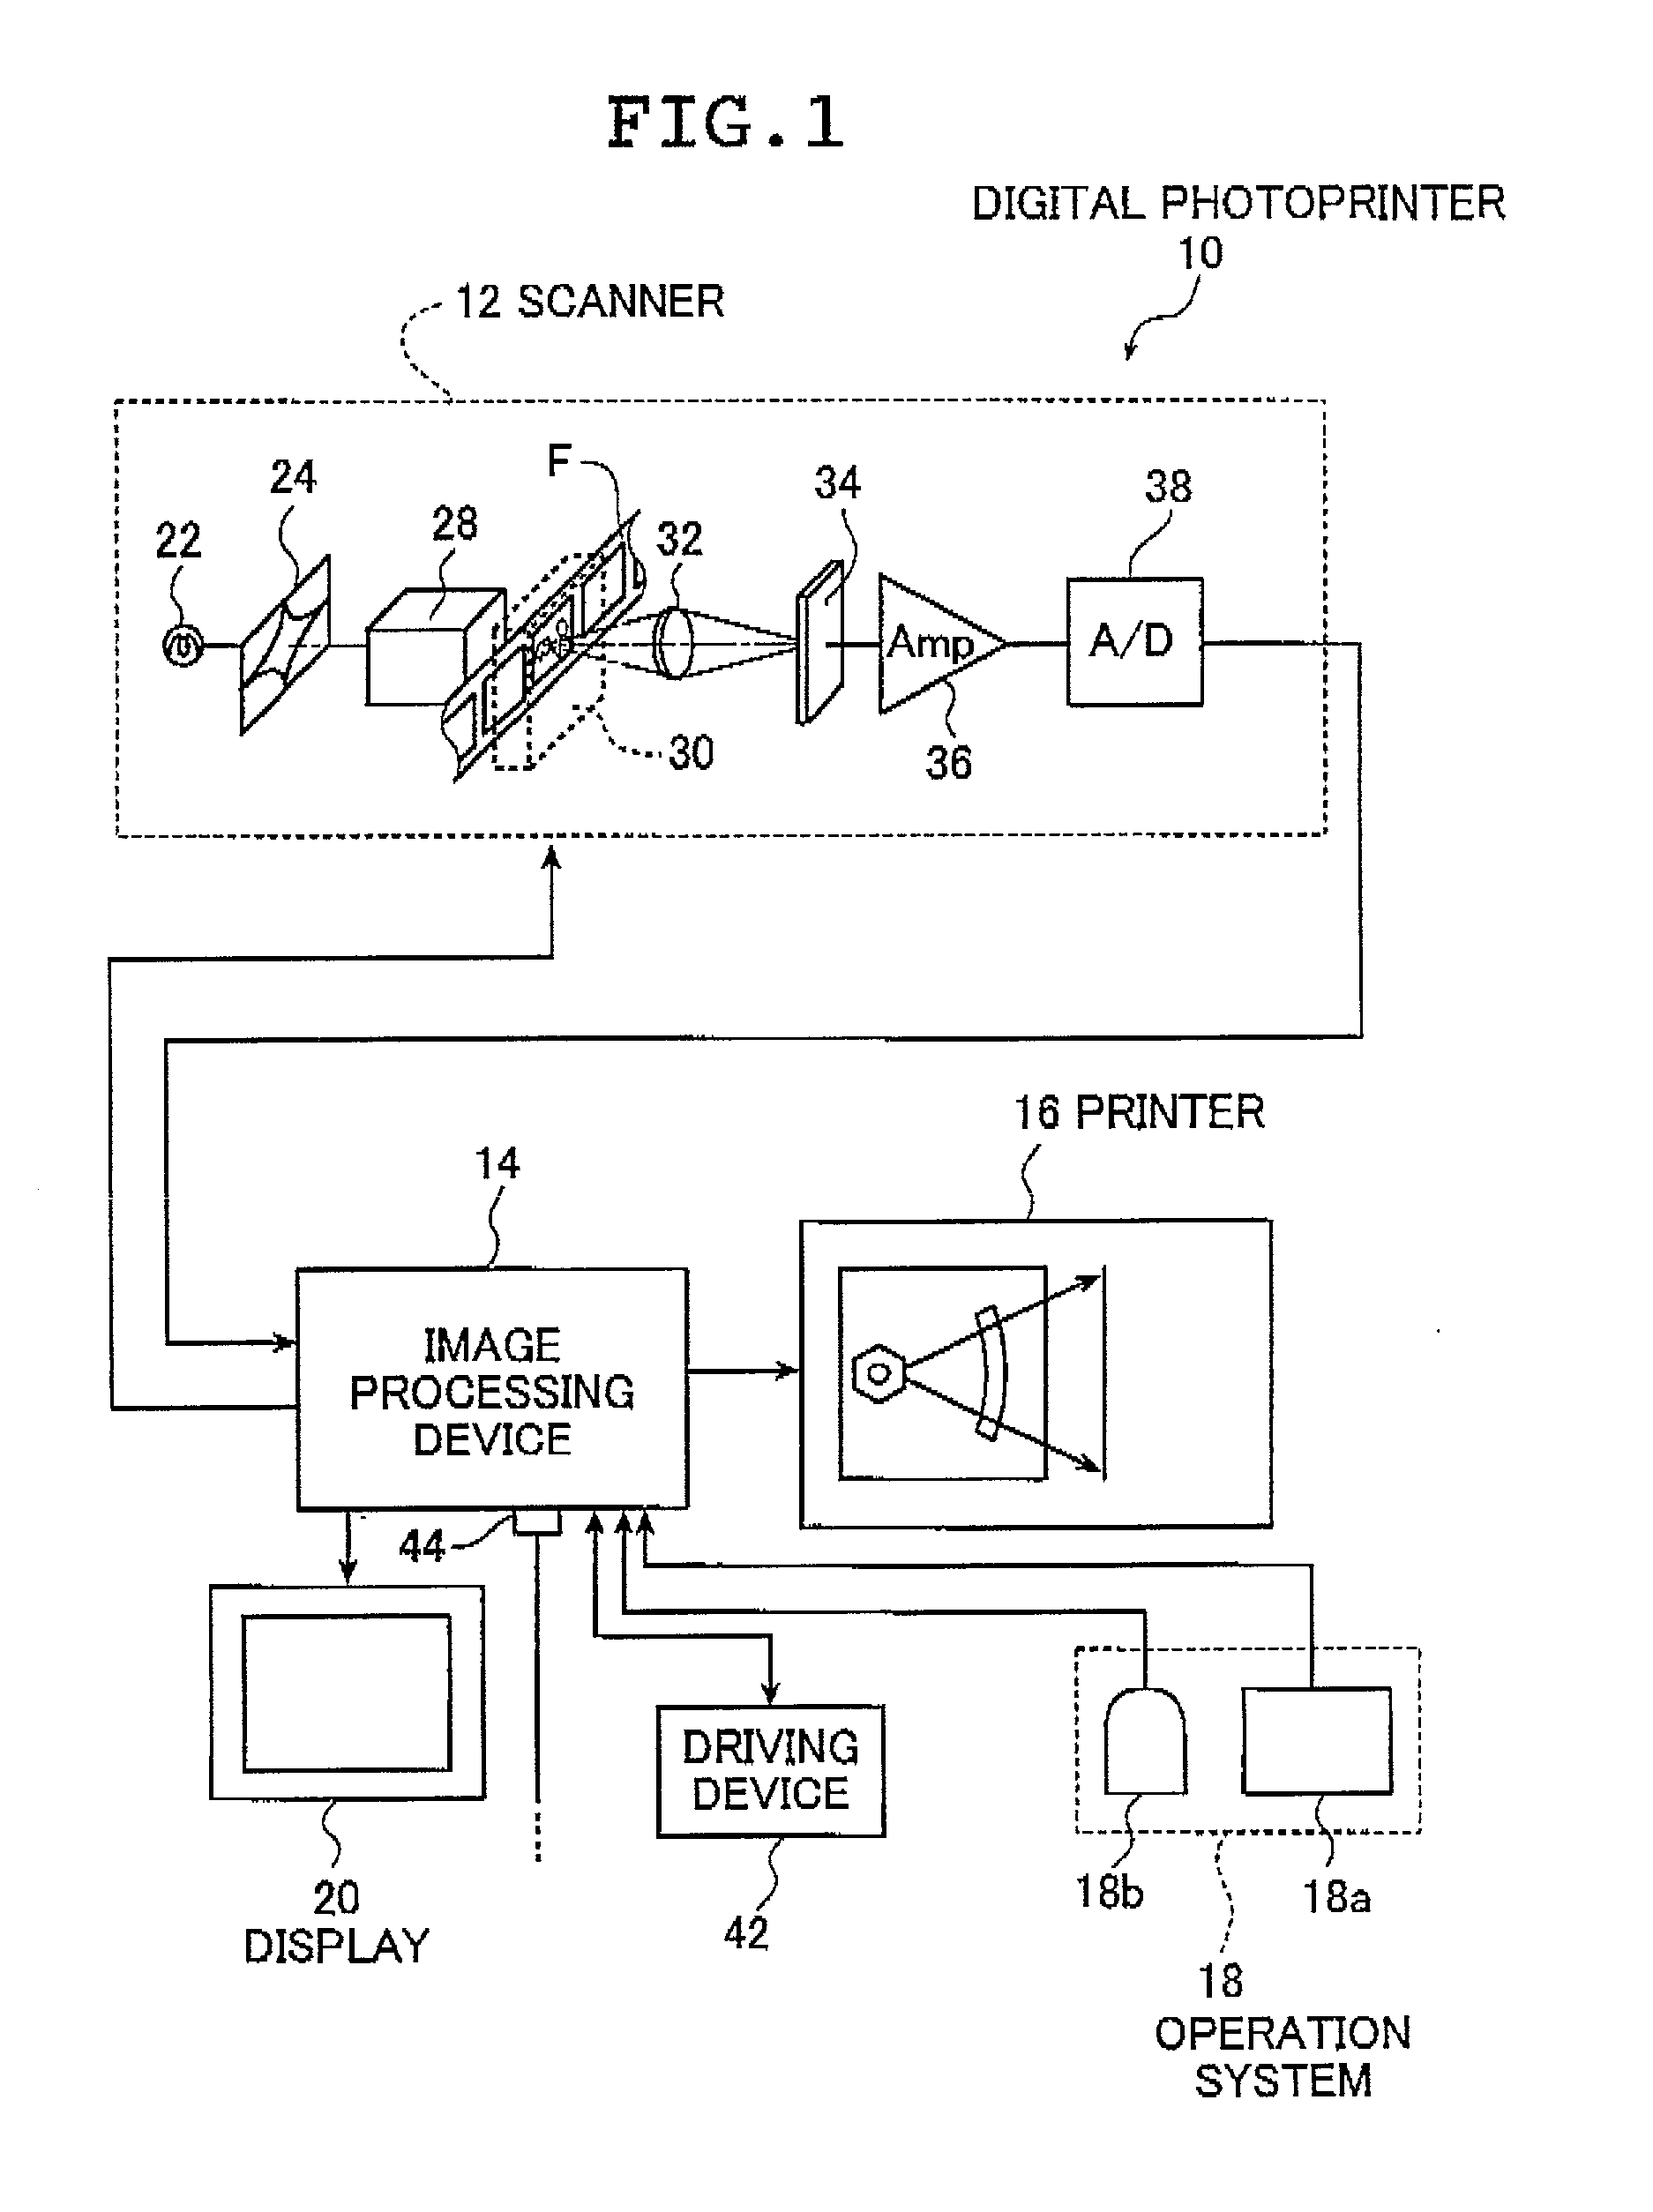 US20020047905A1 - Image processing system and ordering